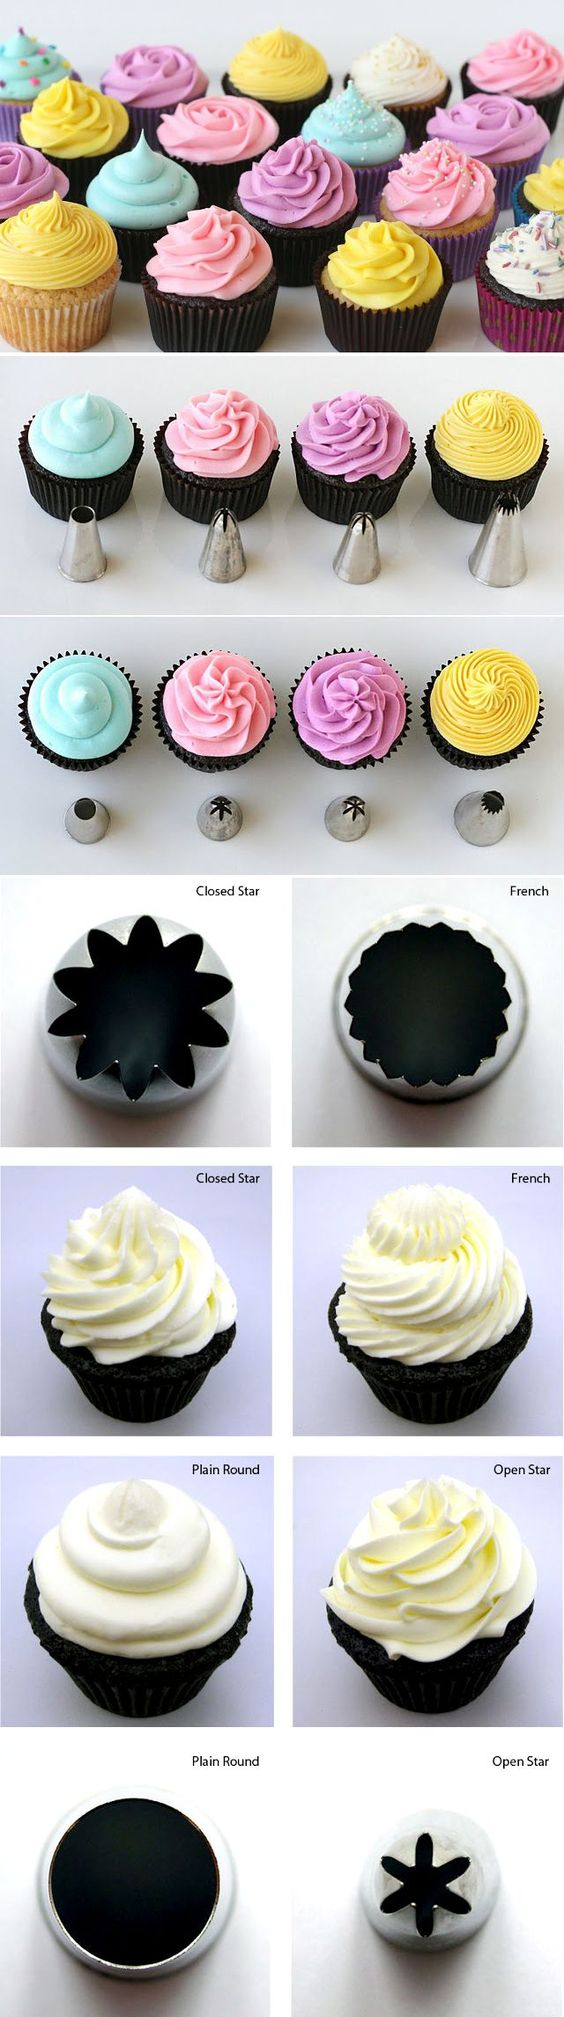 Frosting Reference